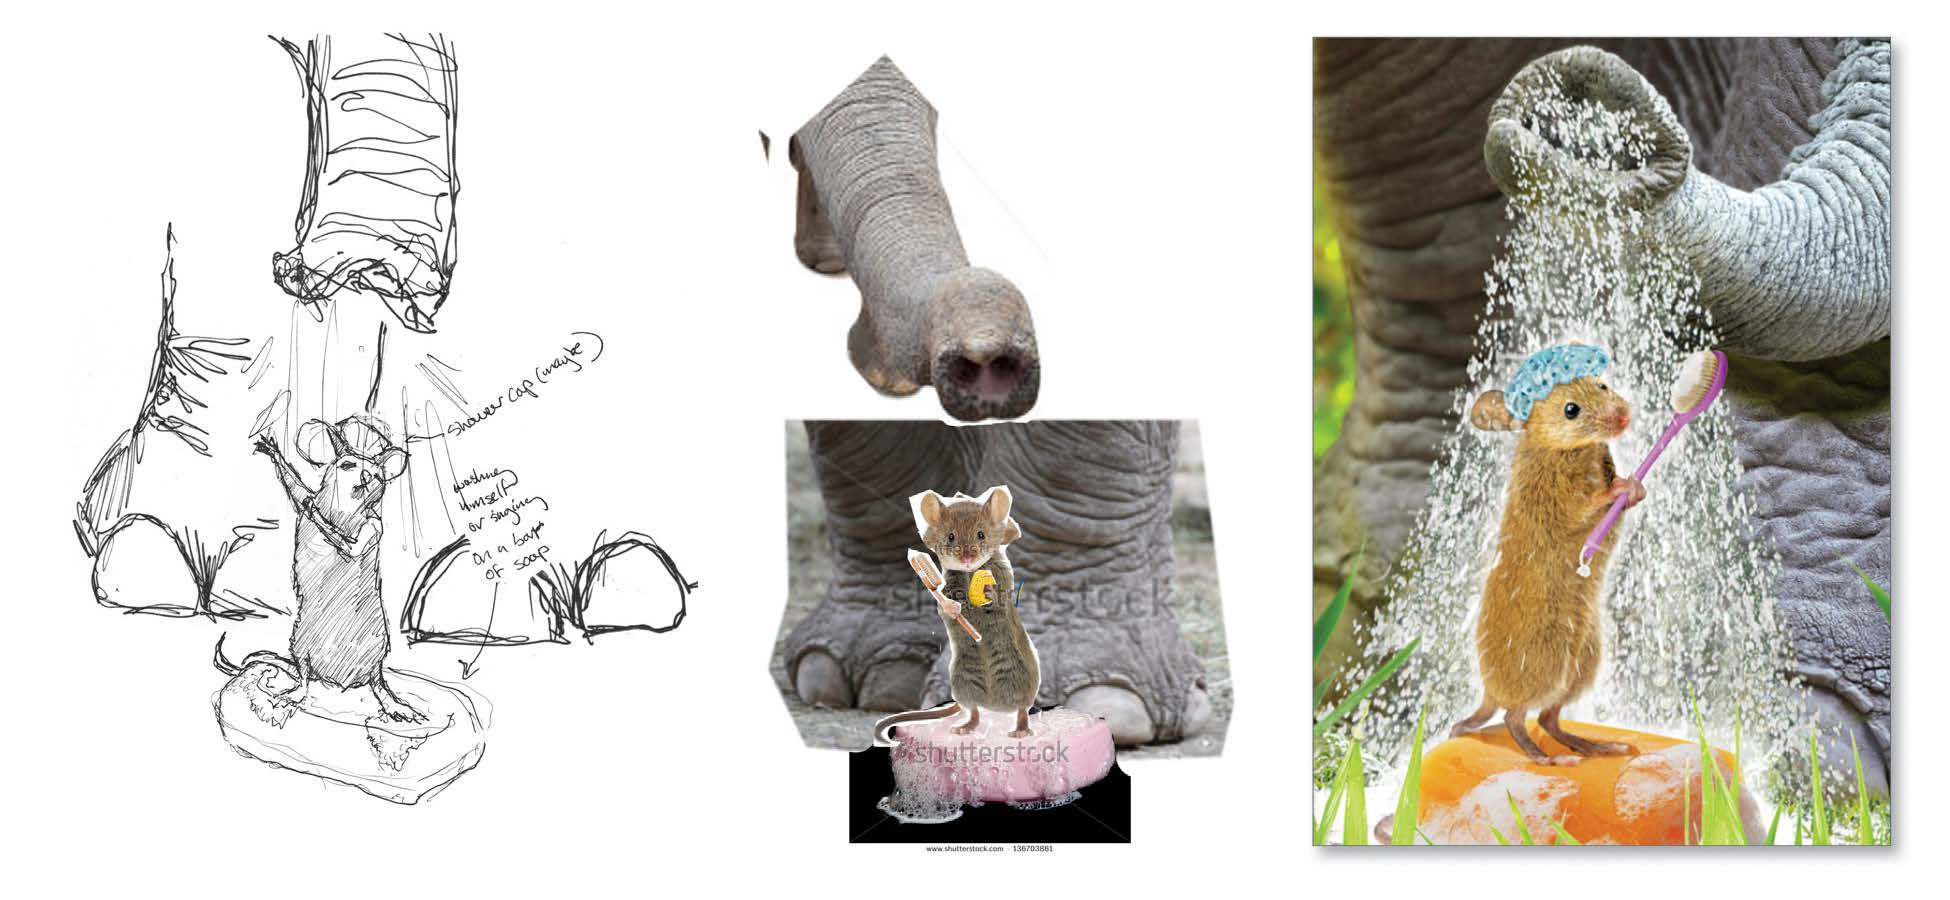 A mouse taking a shower in the spray of an elephant's trunk. From left to right: sketch, quick mockup, final image.